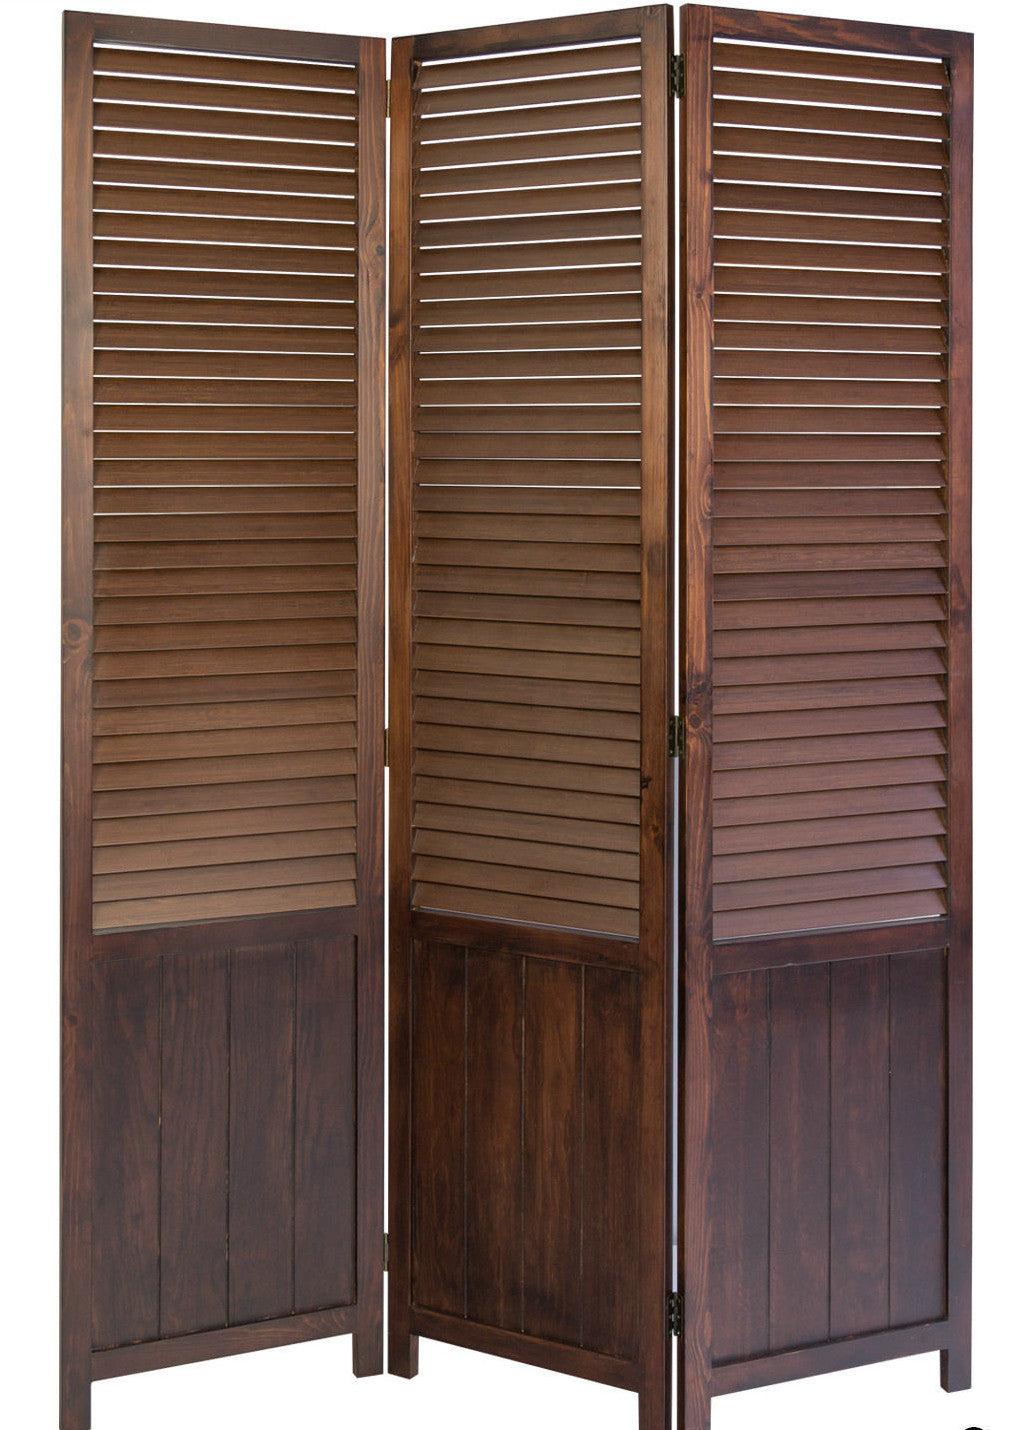 Paravent Wooden Slat Room Divider Screen  Brown   3 Panel